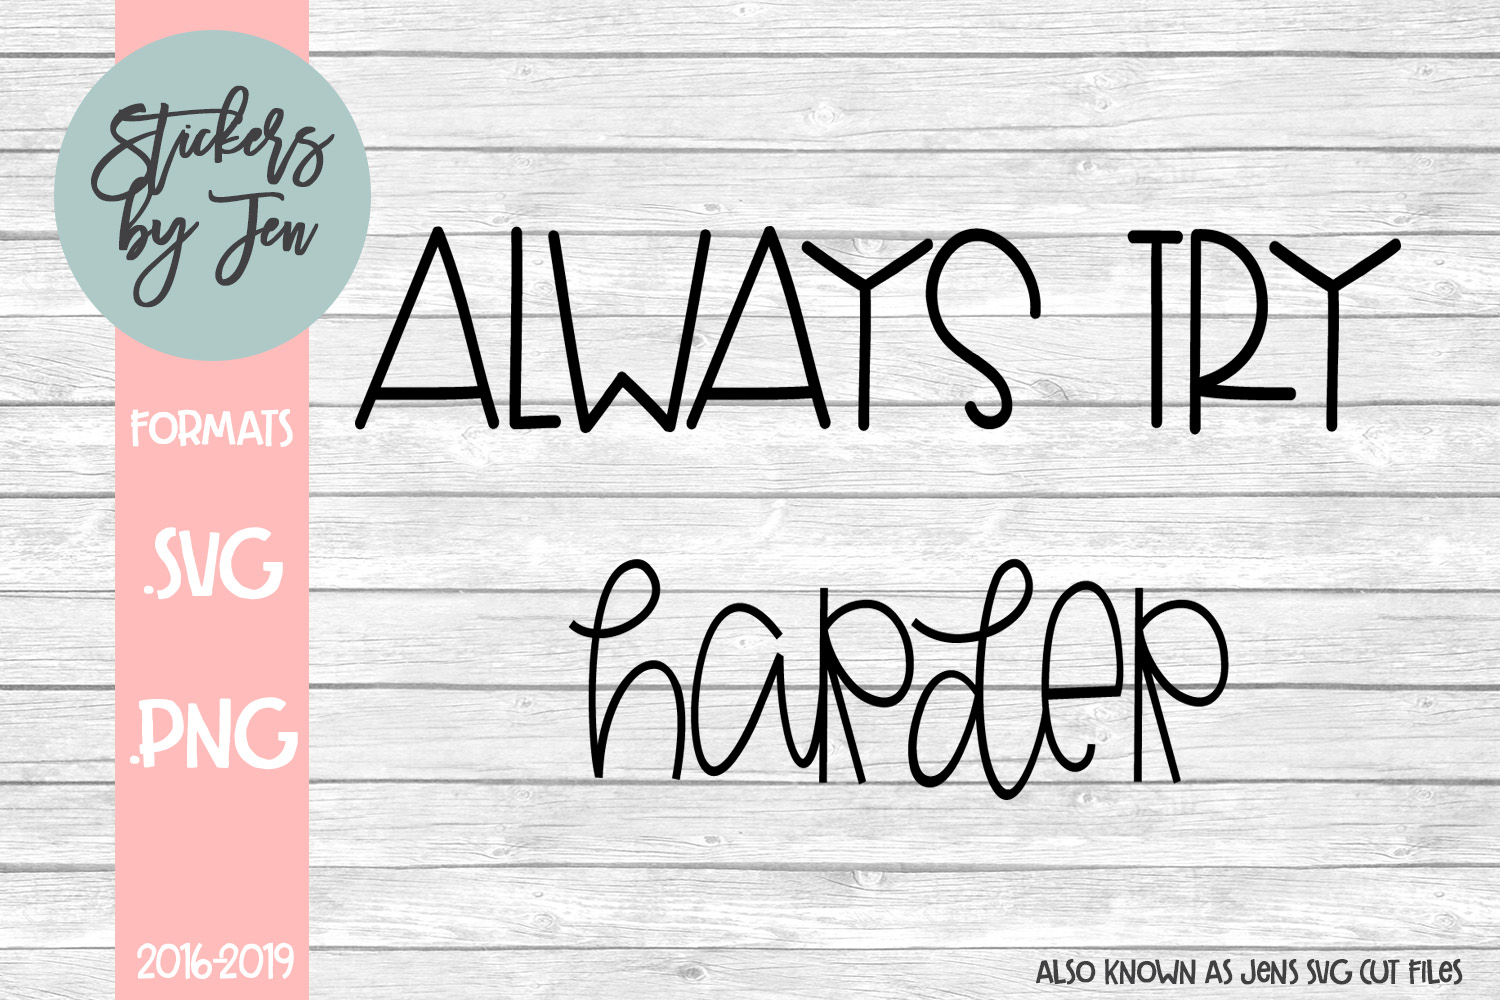 Download Free Always Try Harder Svg Cut File Graphic By Stickers By Jennifer for Cricut Explore, Silhouette and other cutting machines.